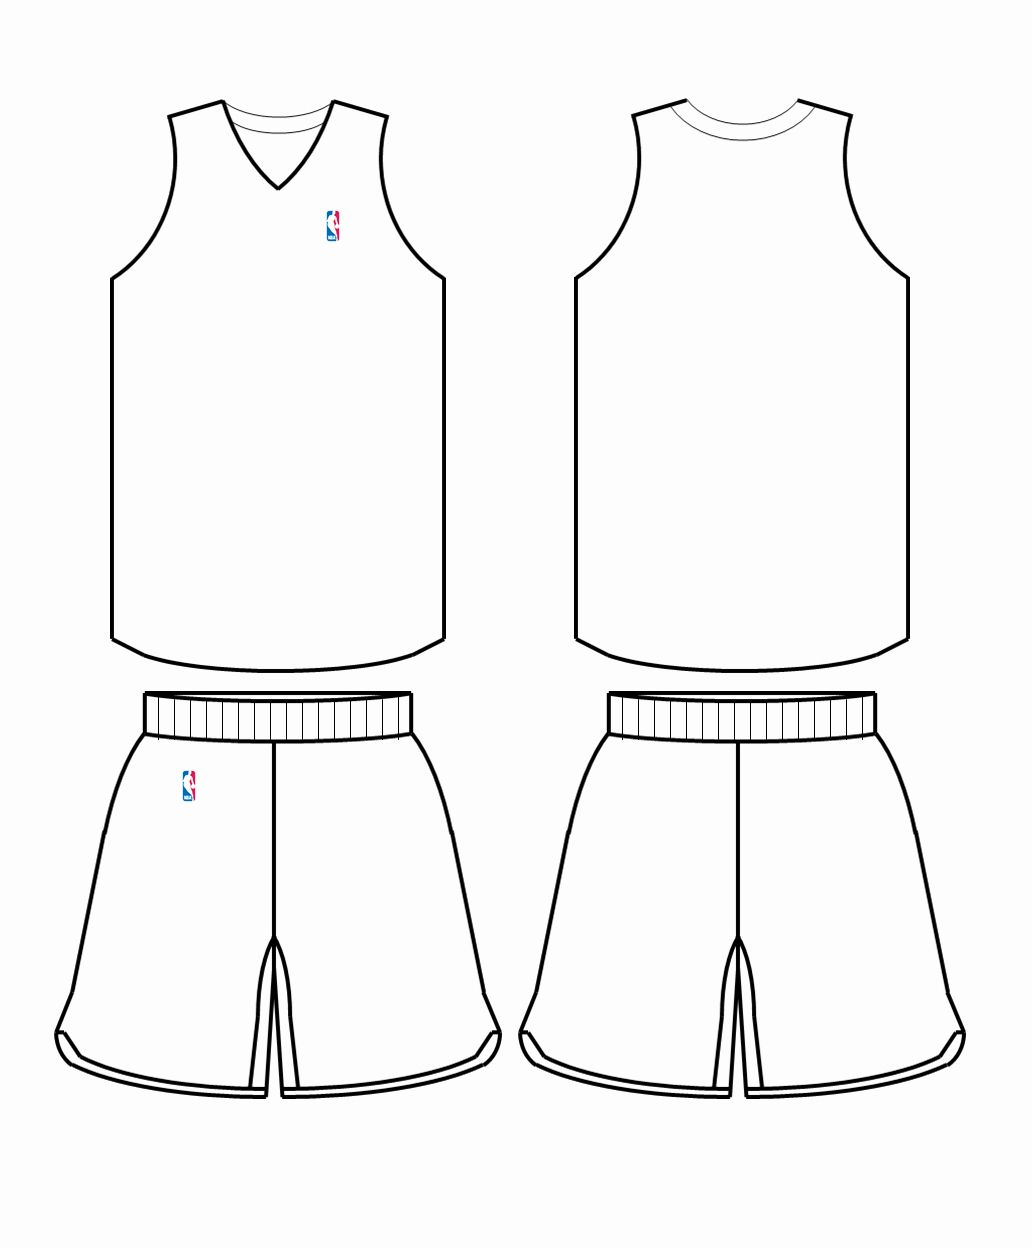 Football Jersey Coloring Page Beautiful Blank Football Jersey Coloring Page Coloring Home Basketball Uniforms Basketball Jersey Jersey Design